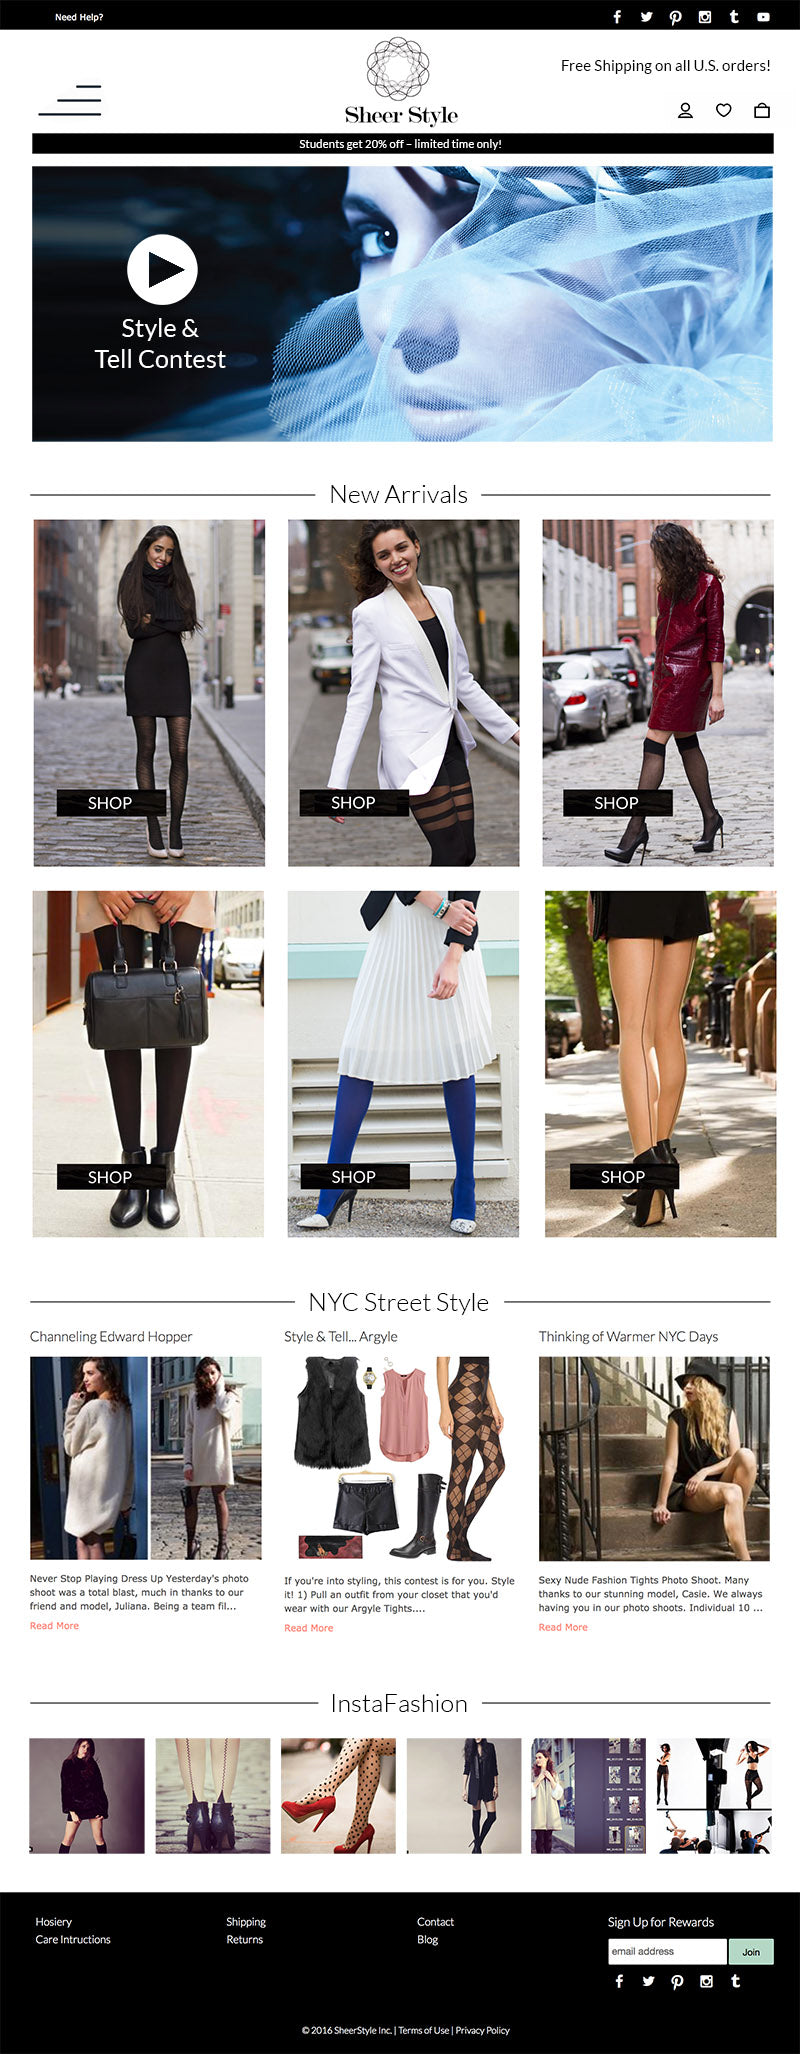 SheerStyle website